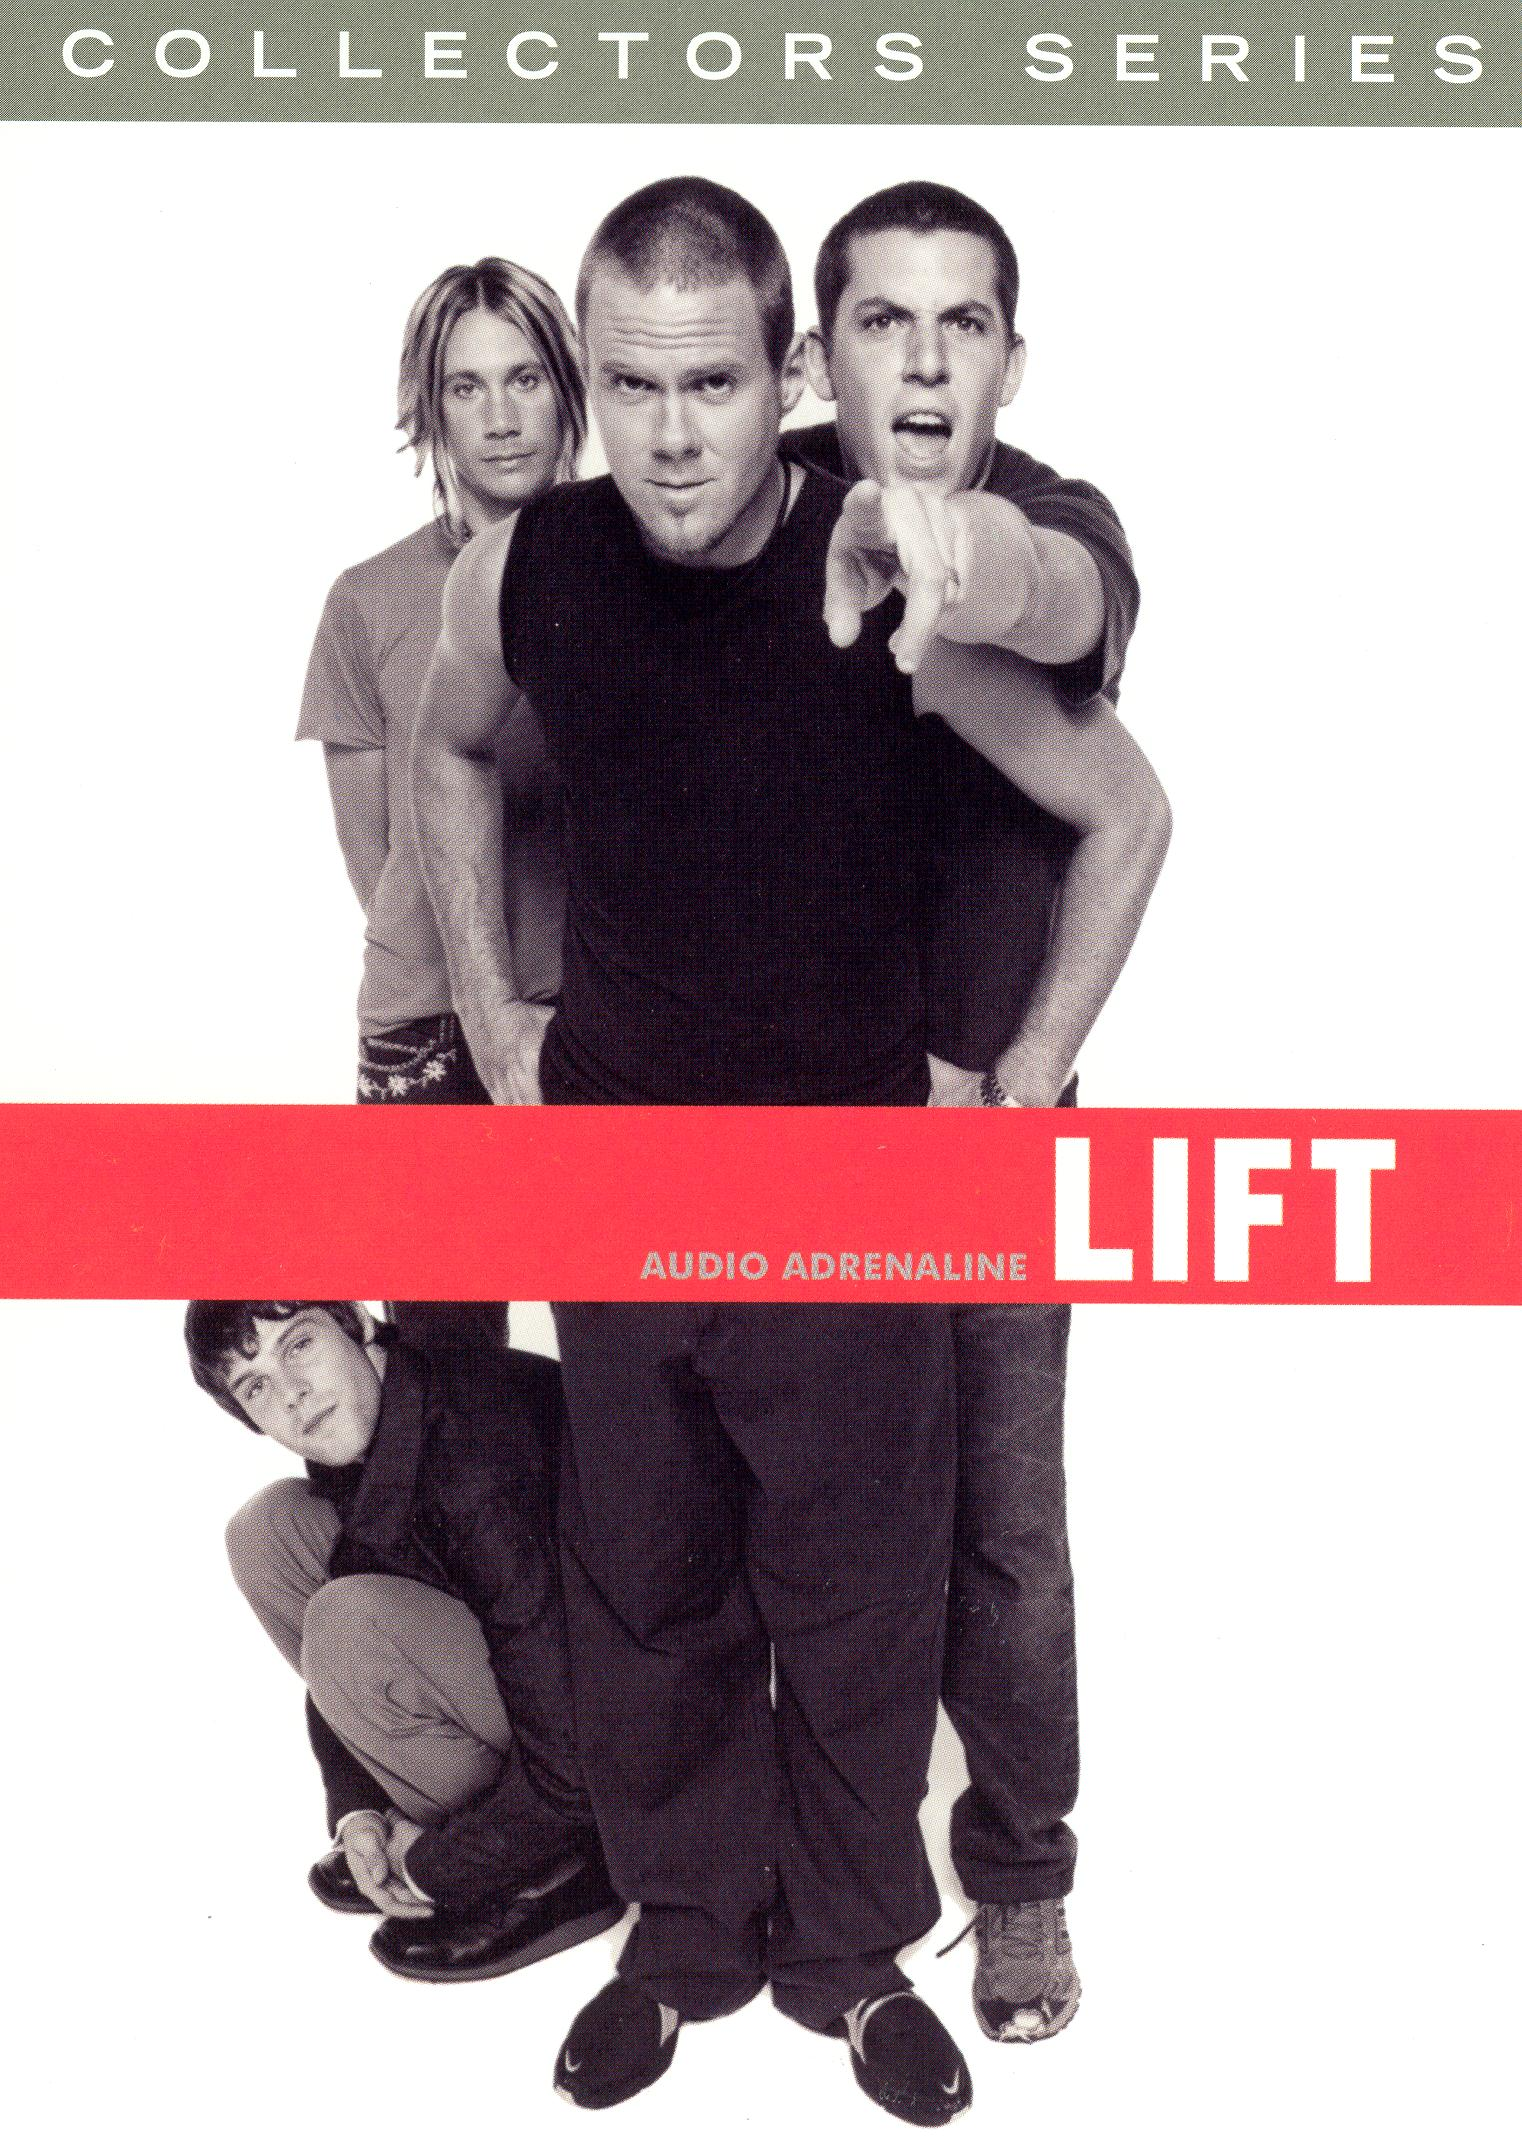 Collectors Series: Audio Adrenaline - Lift